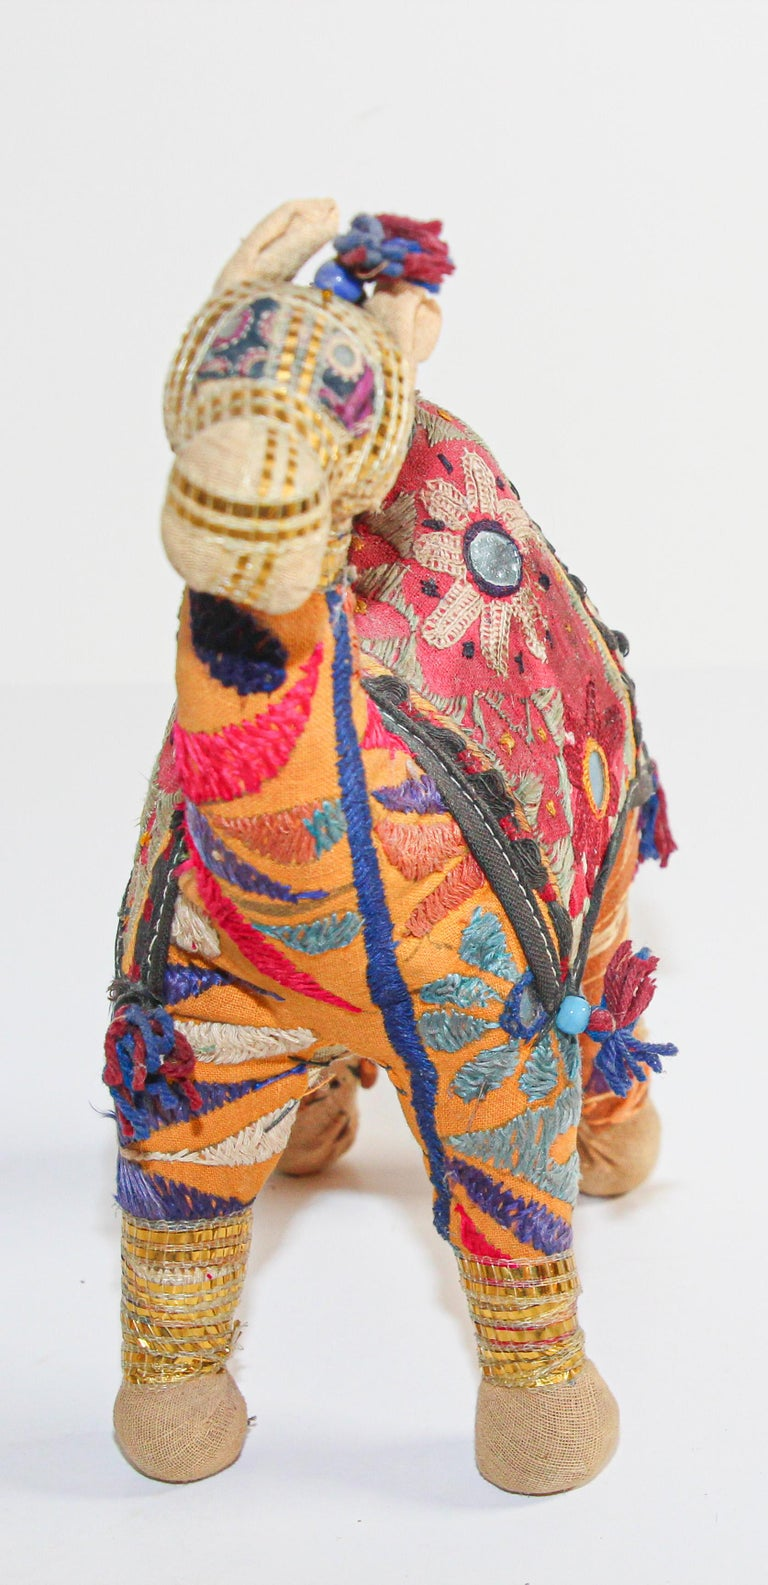 Handcrafted Raj Vintage Stuffed Cotton Embroidered Camel Toy, India, 1950 In Good Condition For Sale In North Hollywood, CA